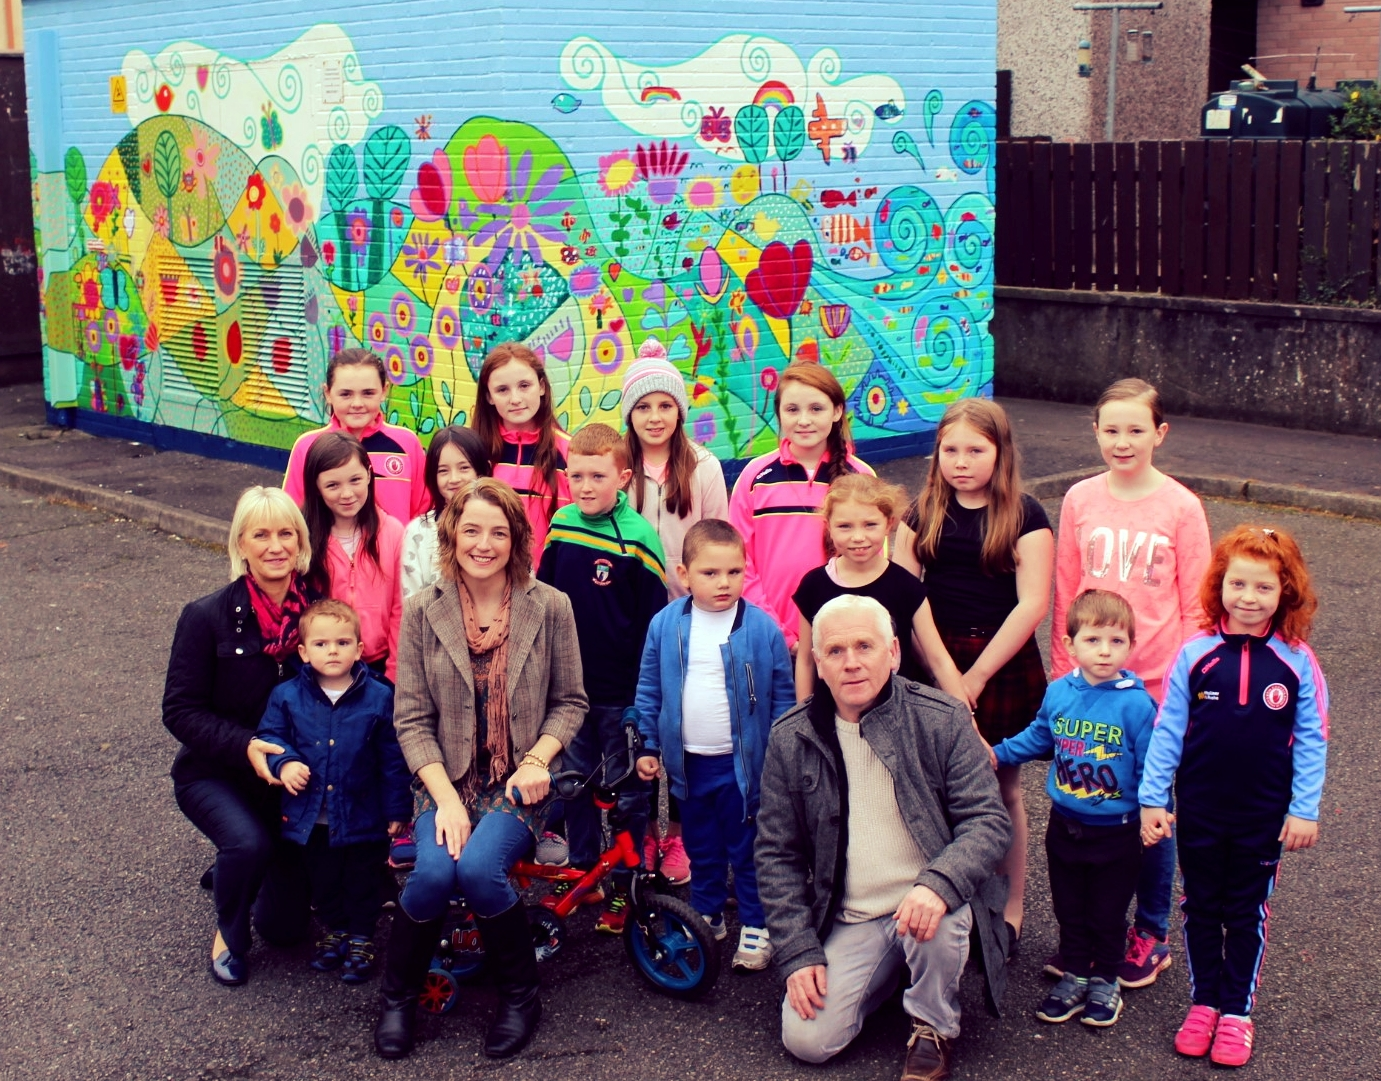 Artist Mary T. worked with local children to design and create the mural.